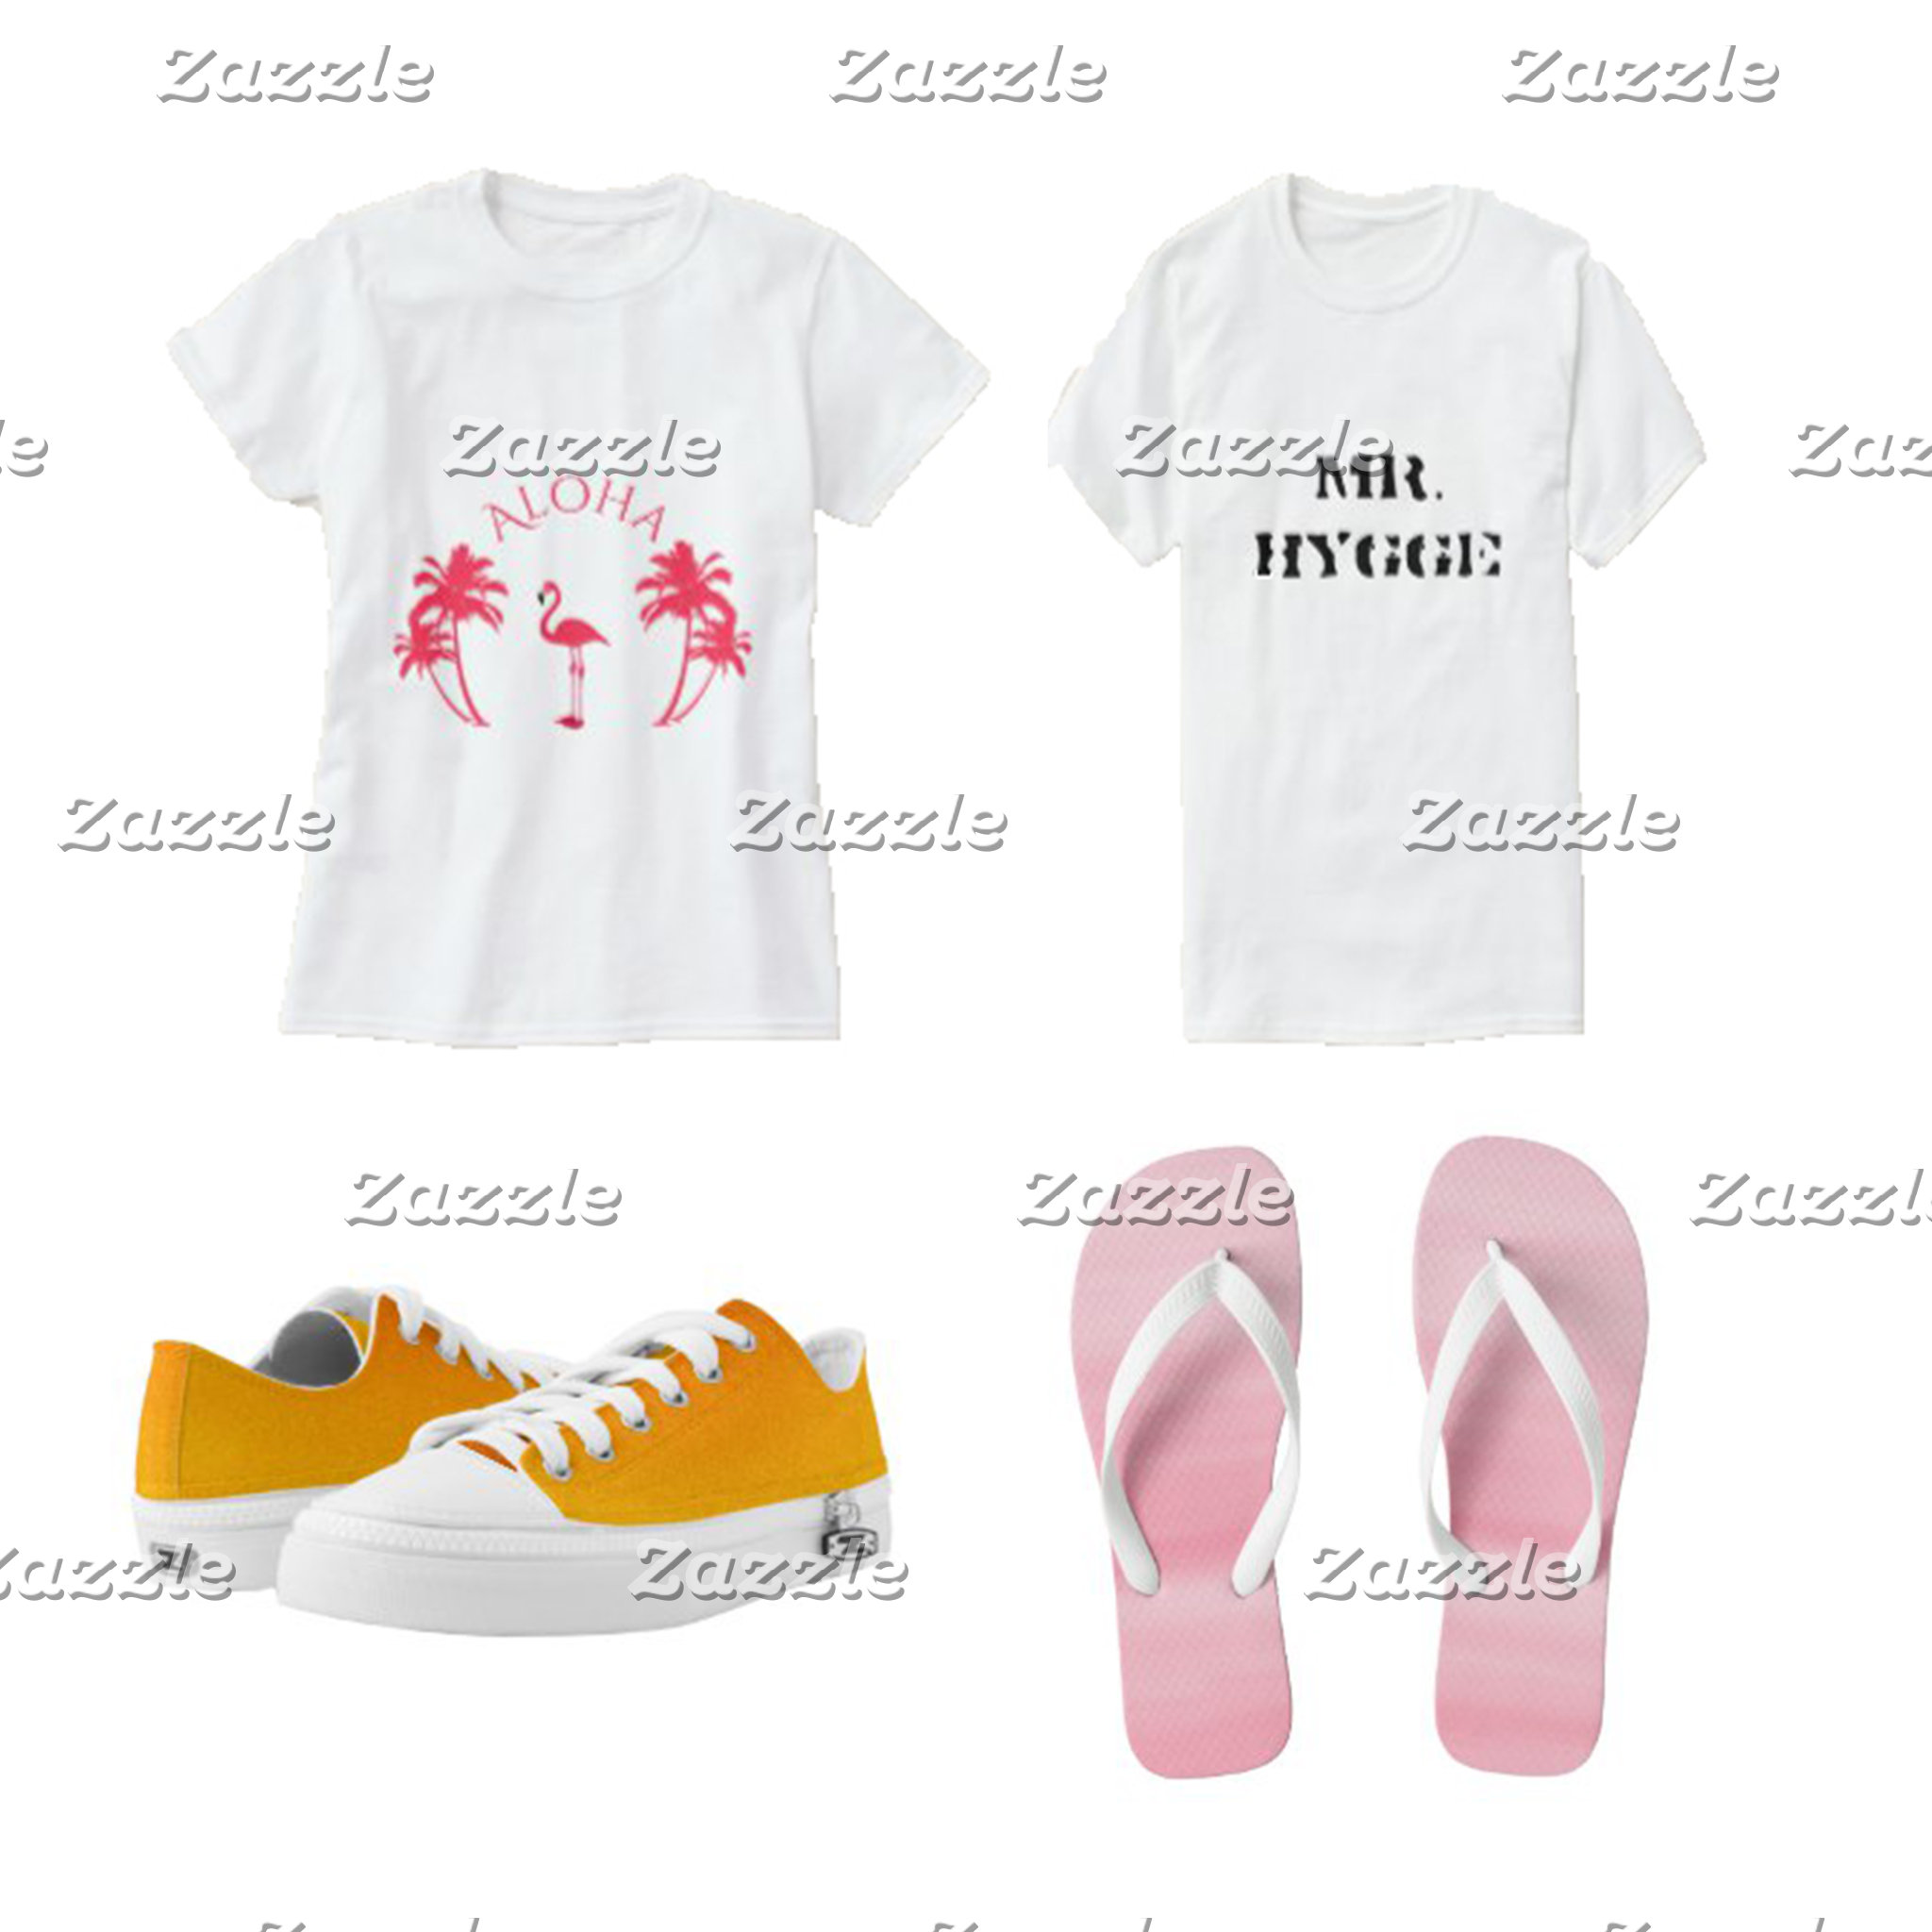 T-shirts, scarves, shoes